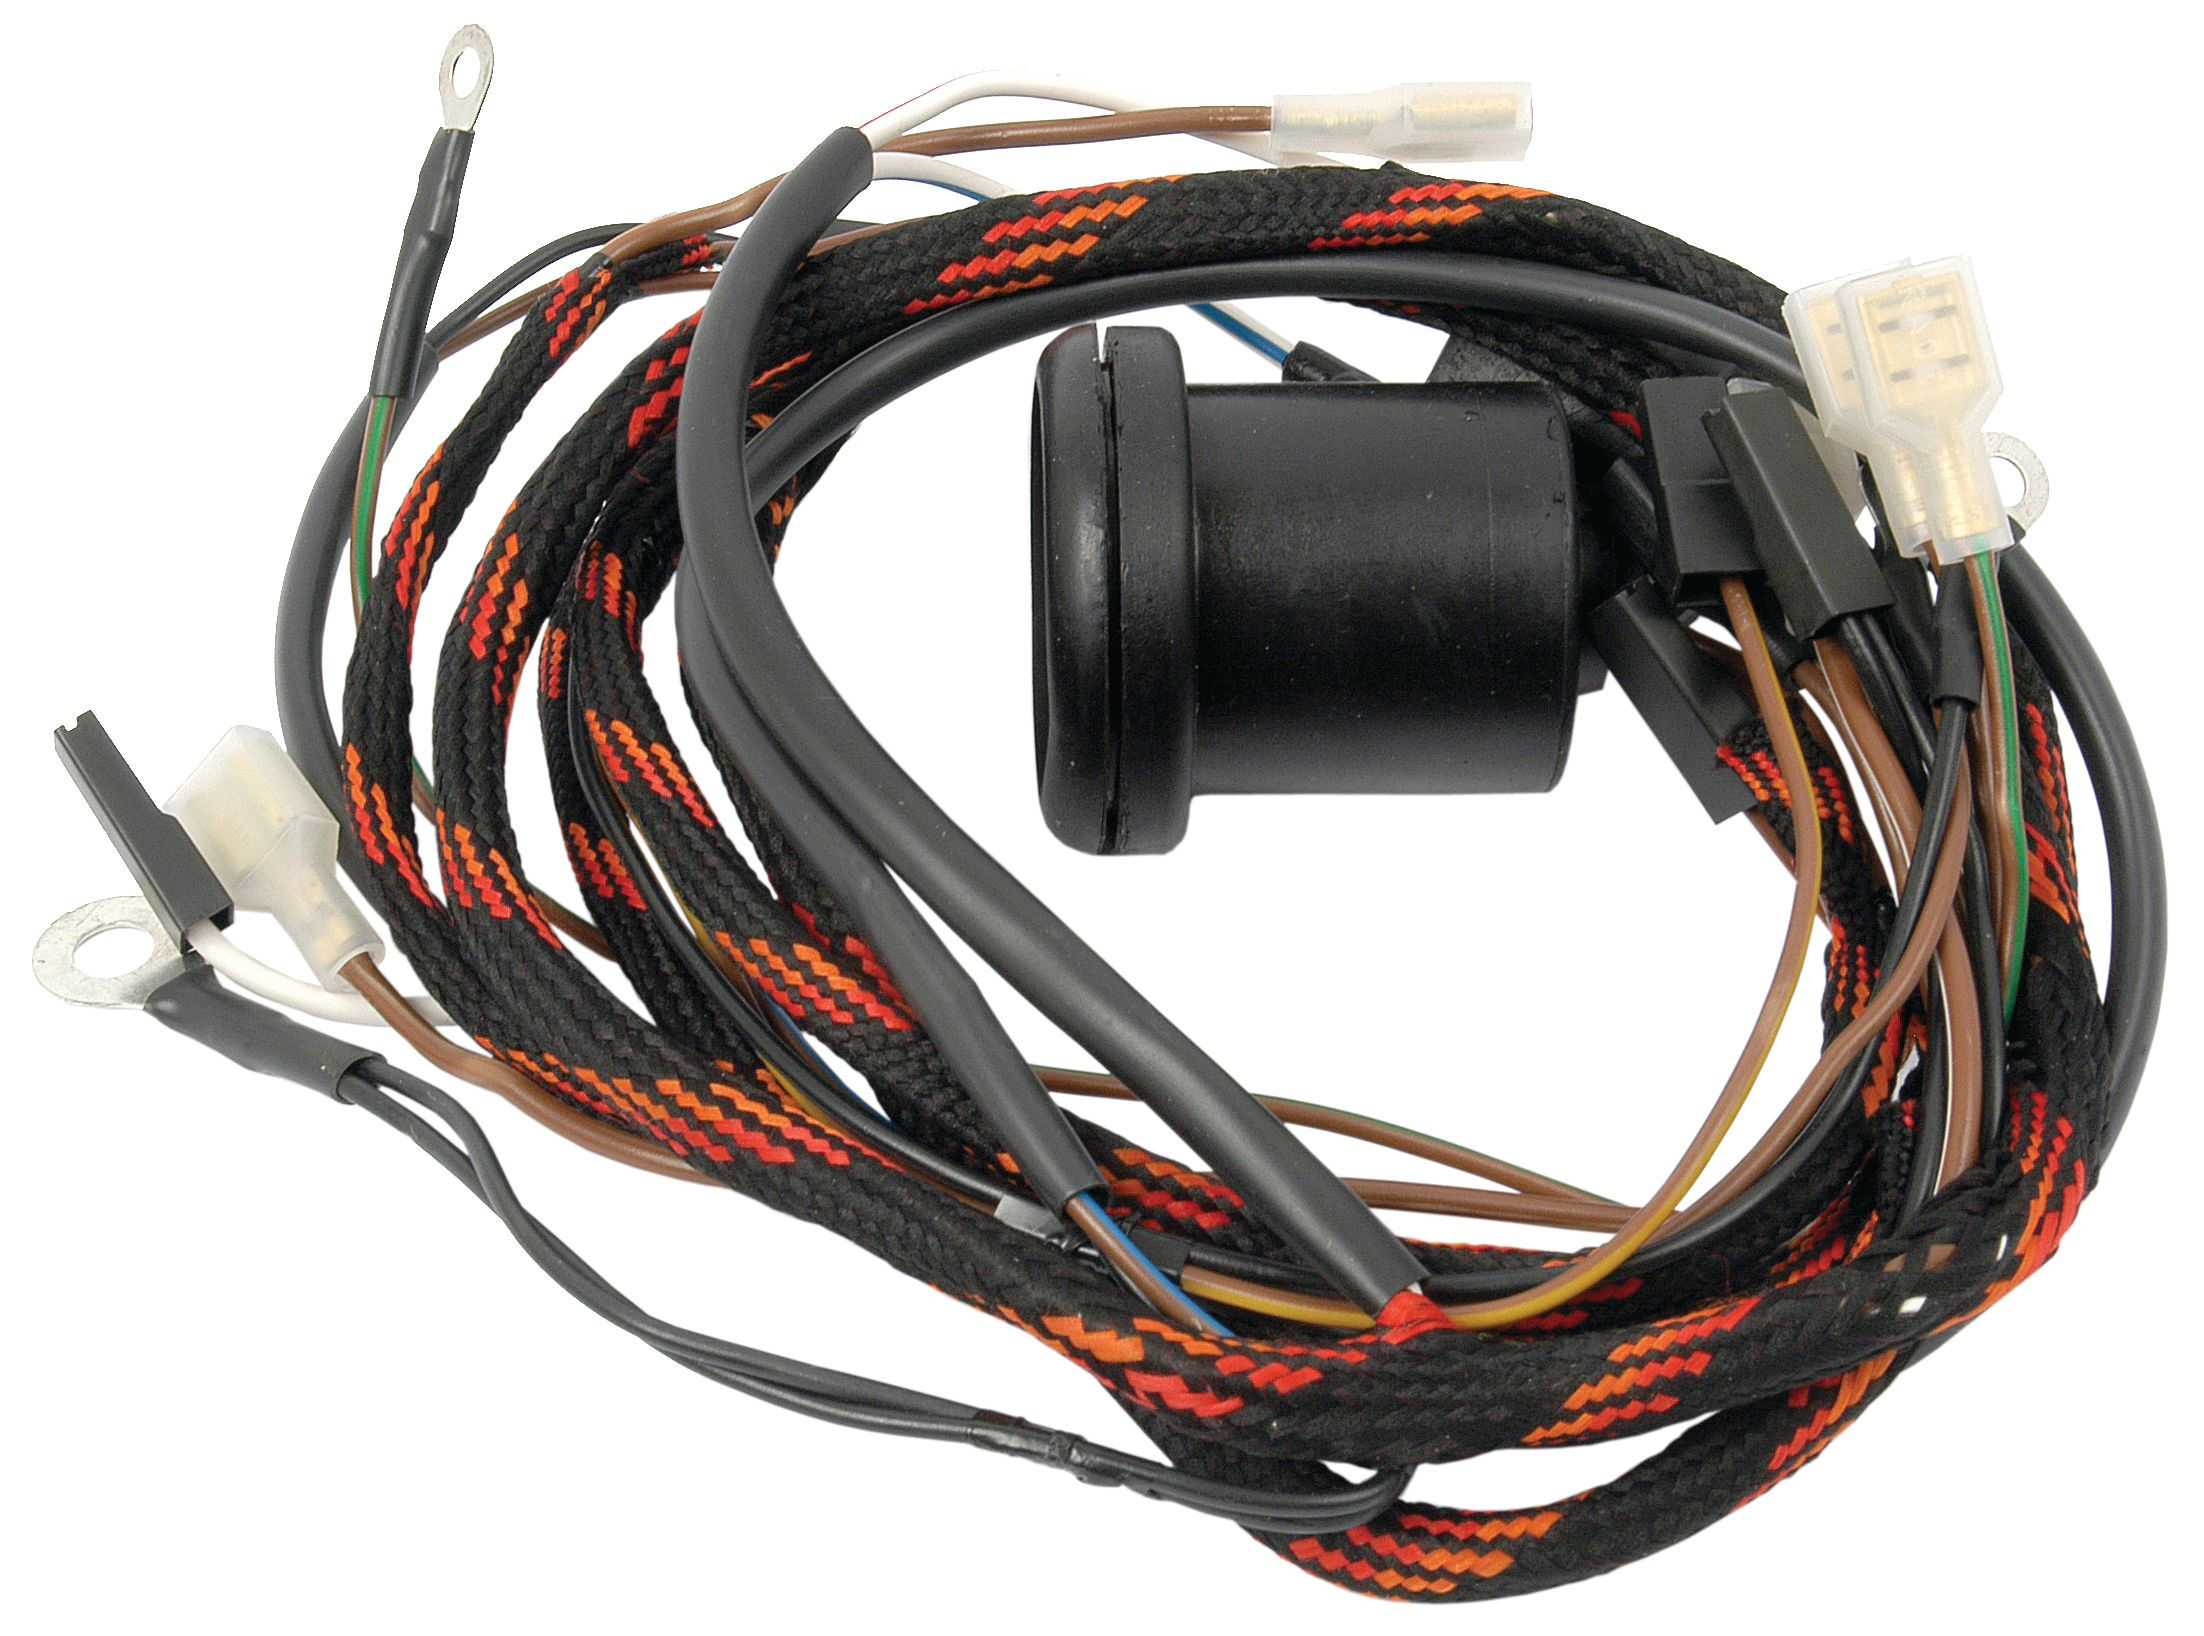 buy perkins tractor electrics spare parts free uk Ford Wiring Harness Kits Trailer Wiring Harness